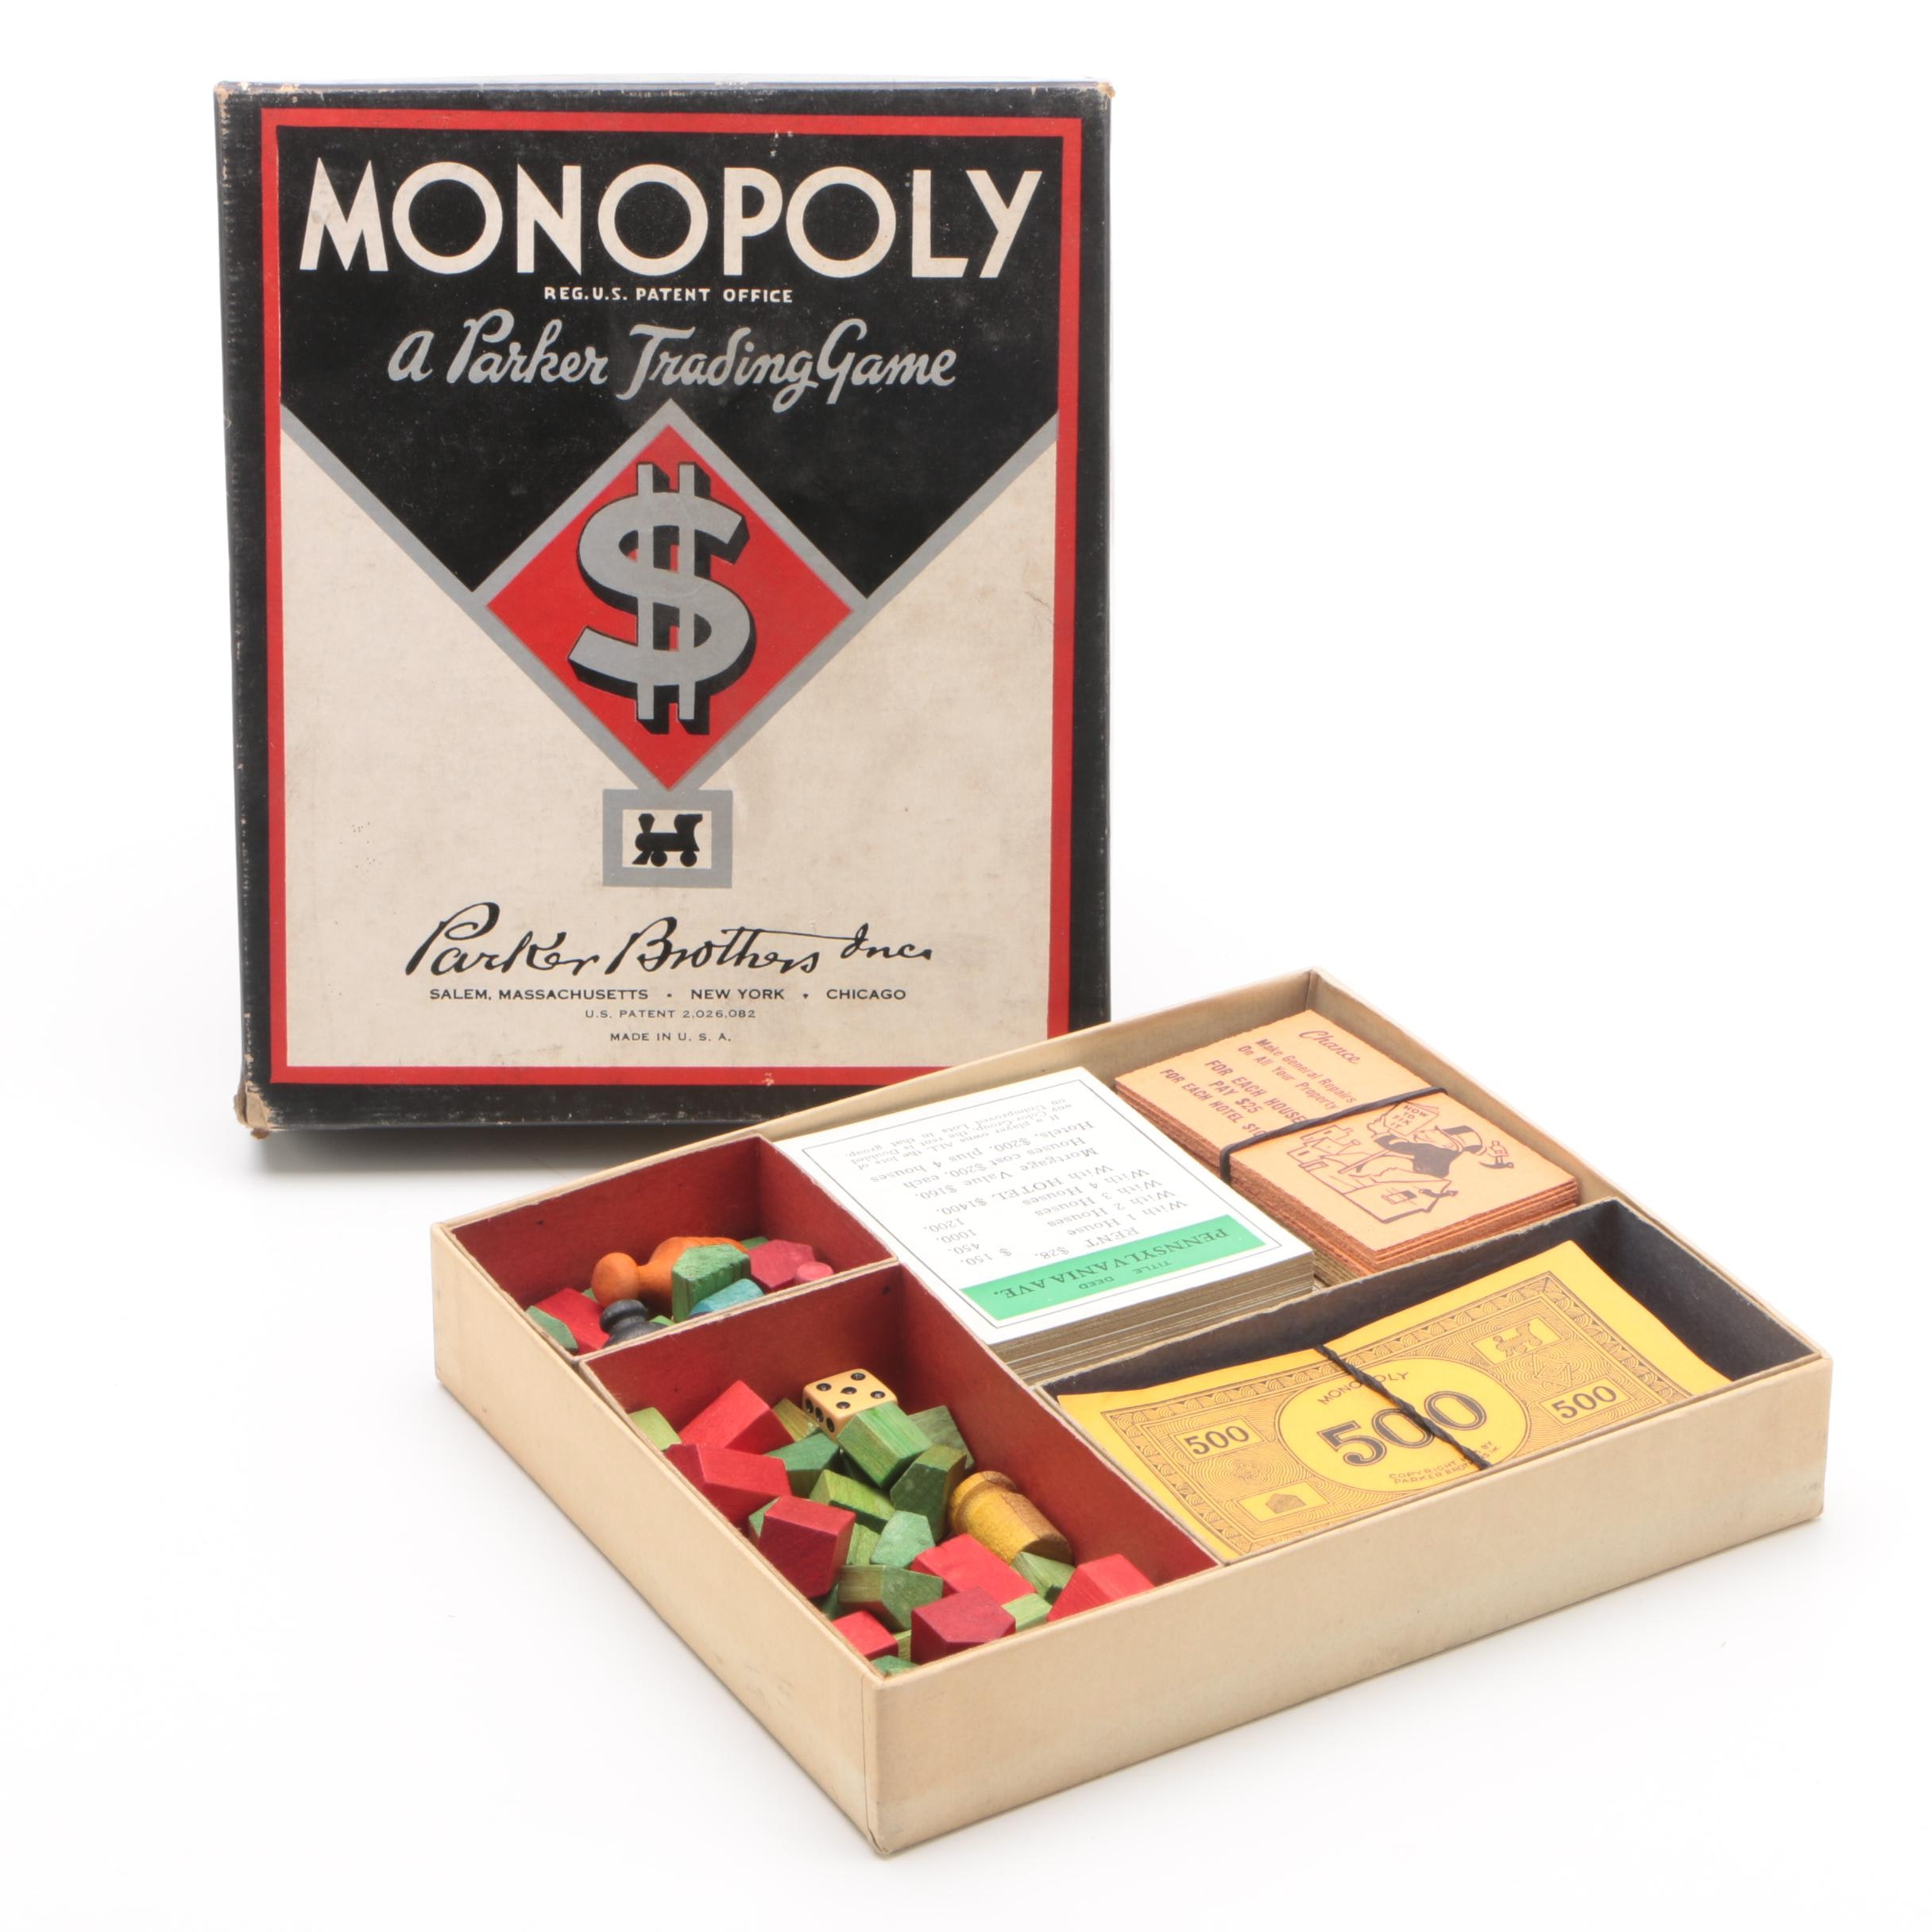 1940s Monopoly Board Game by Parker Brothers